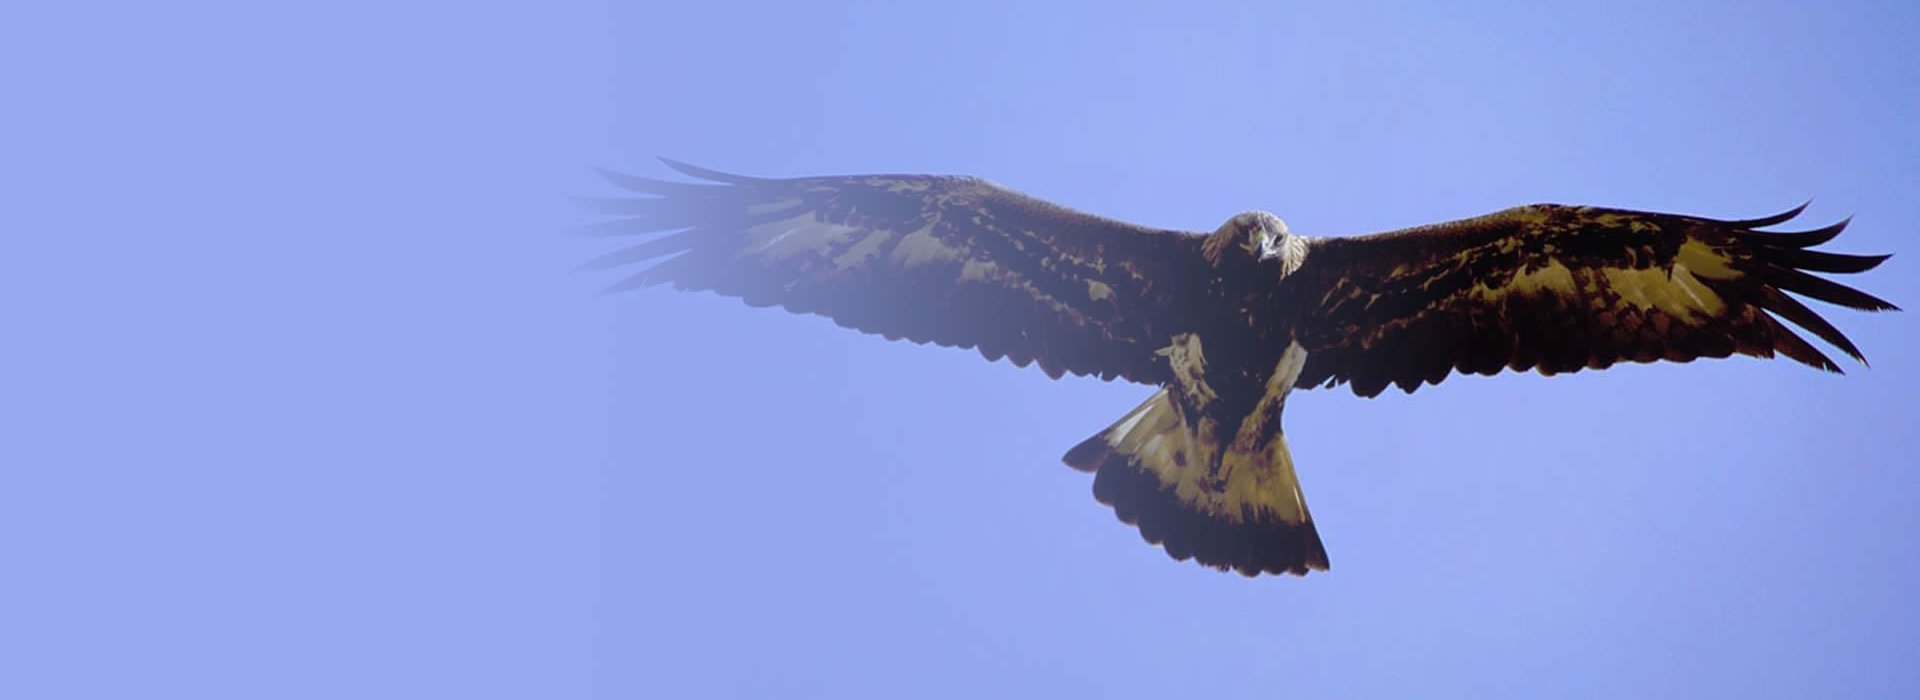 Eagle soaring and looking down